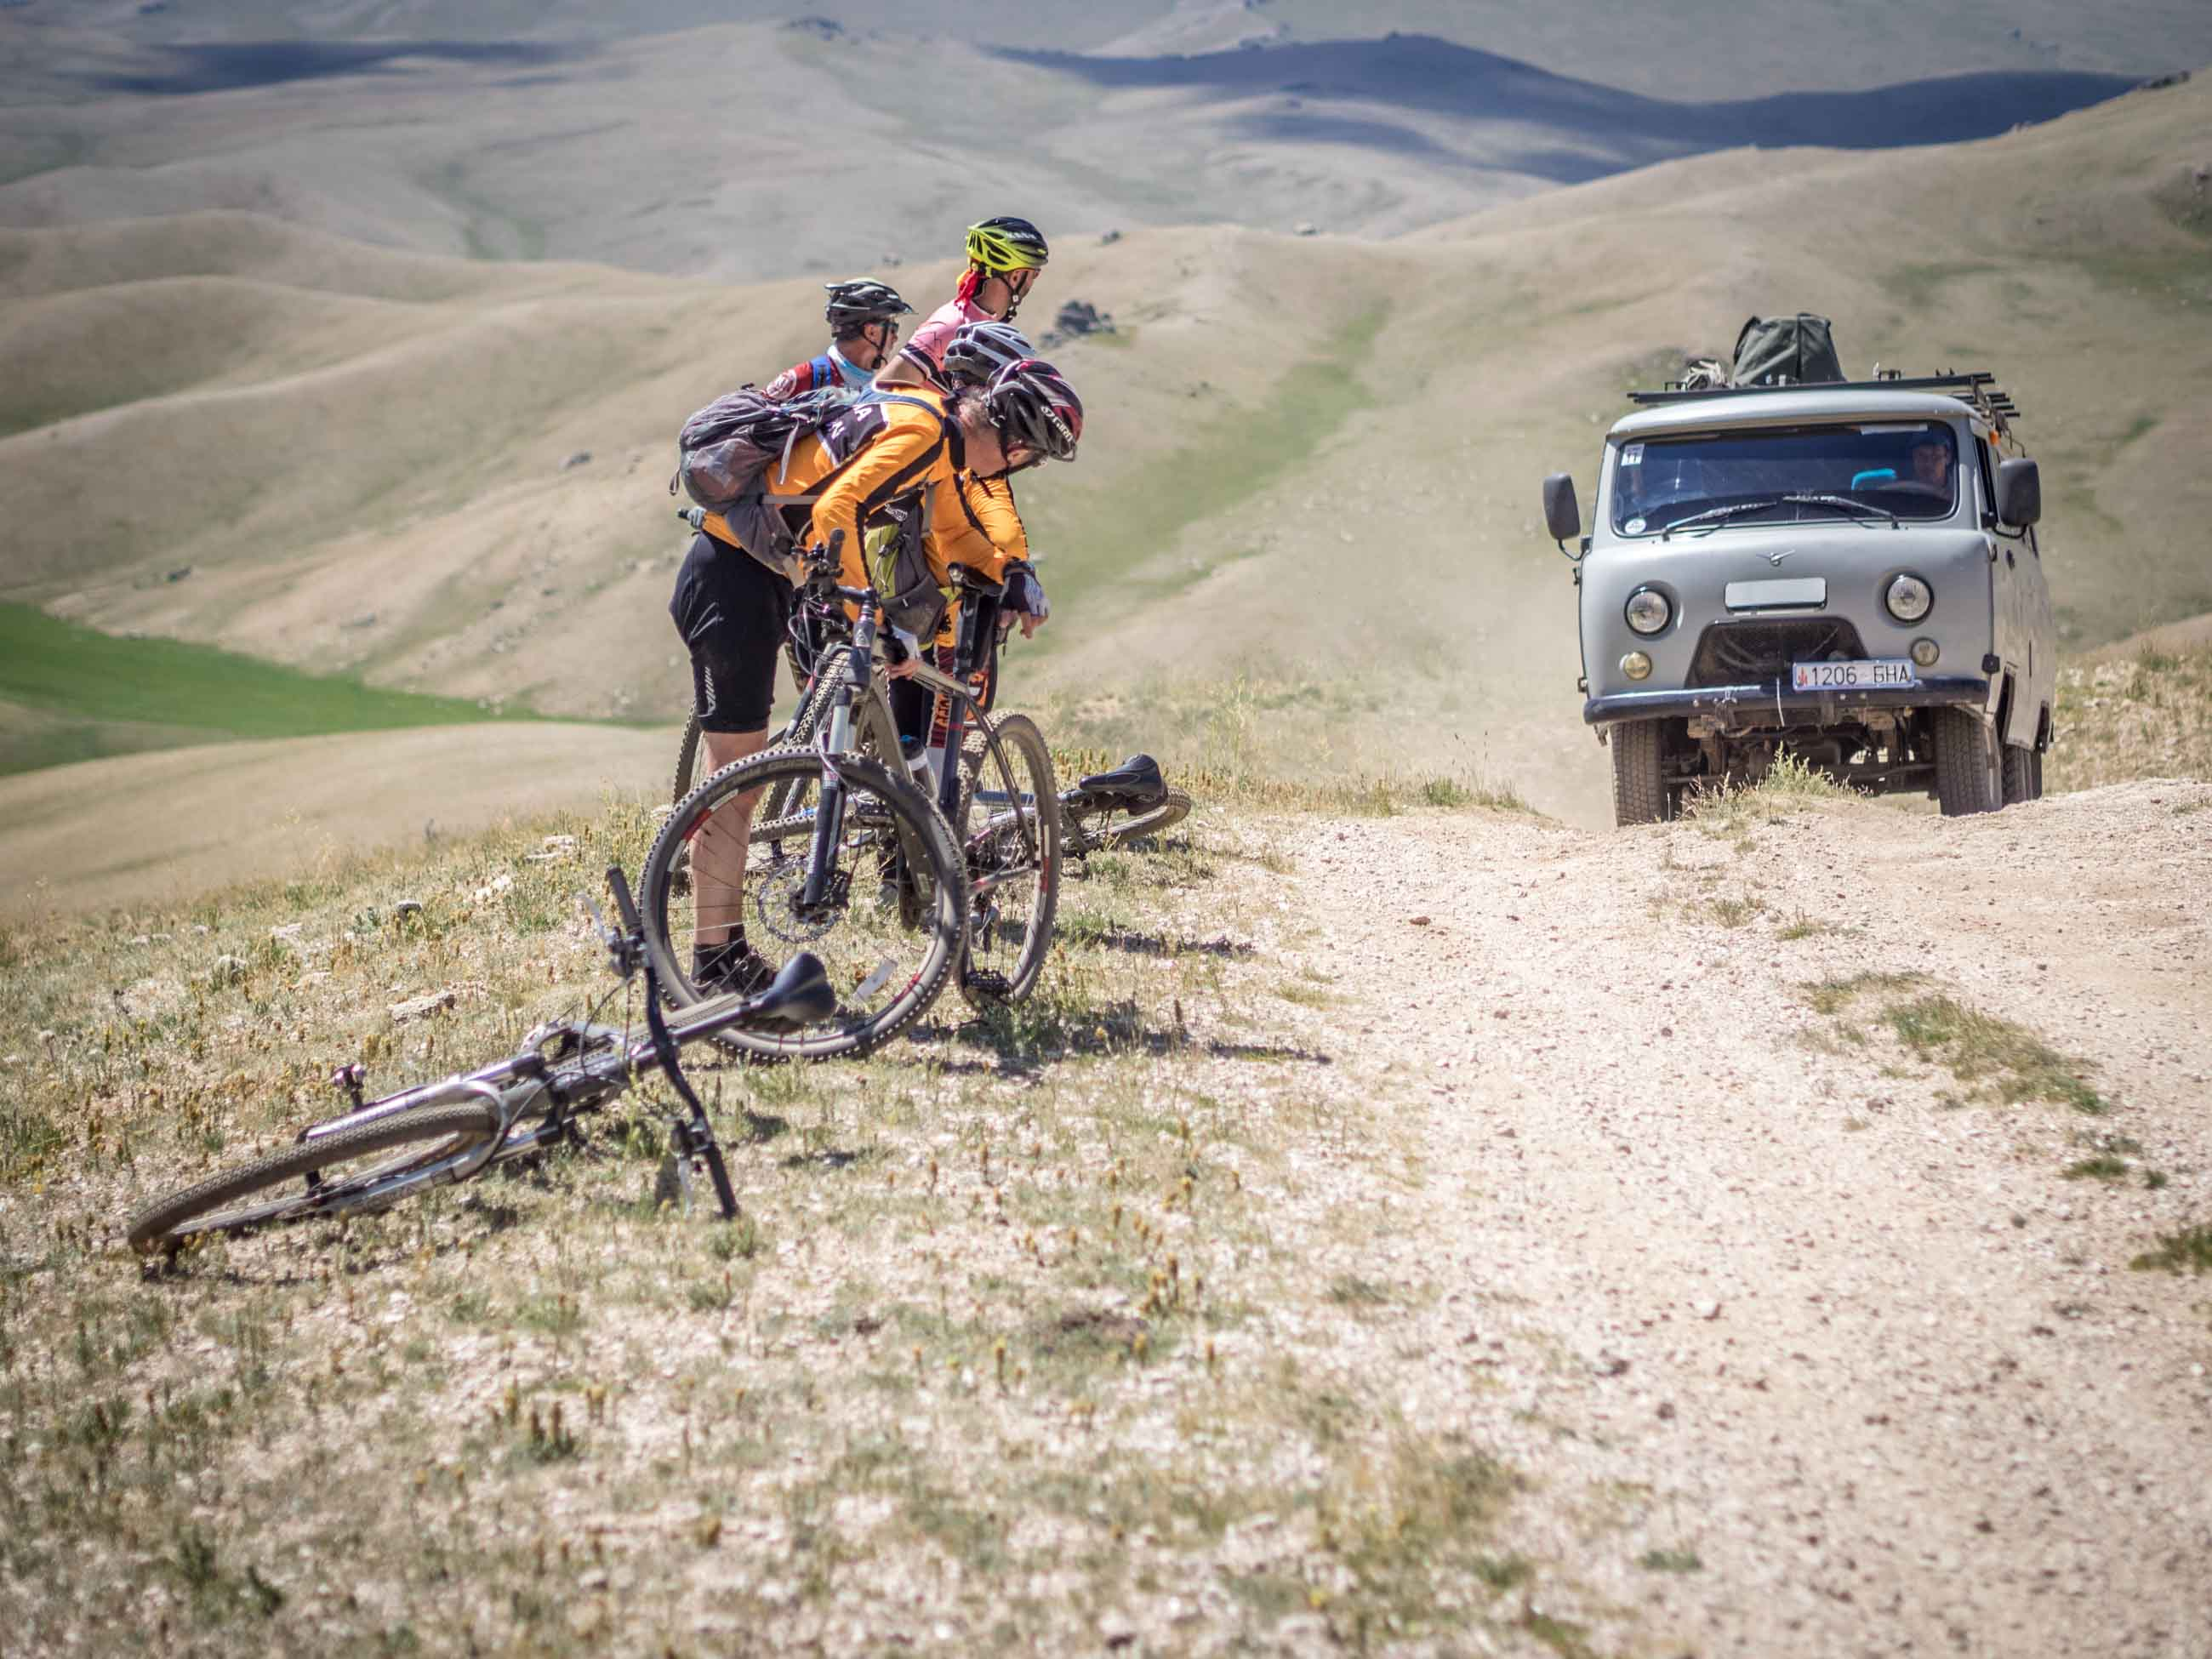 Russian truck as support vehicle on Mongolian cycling trip